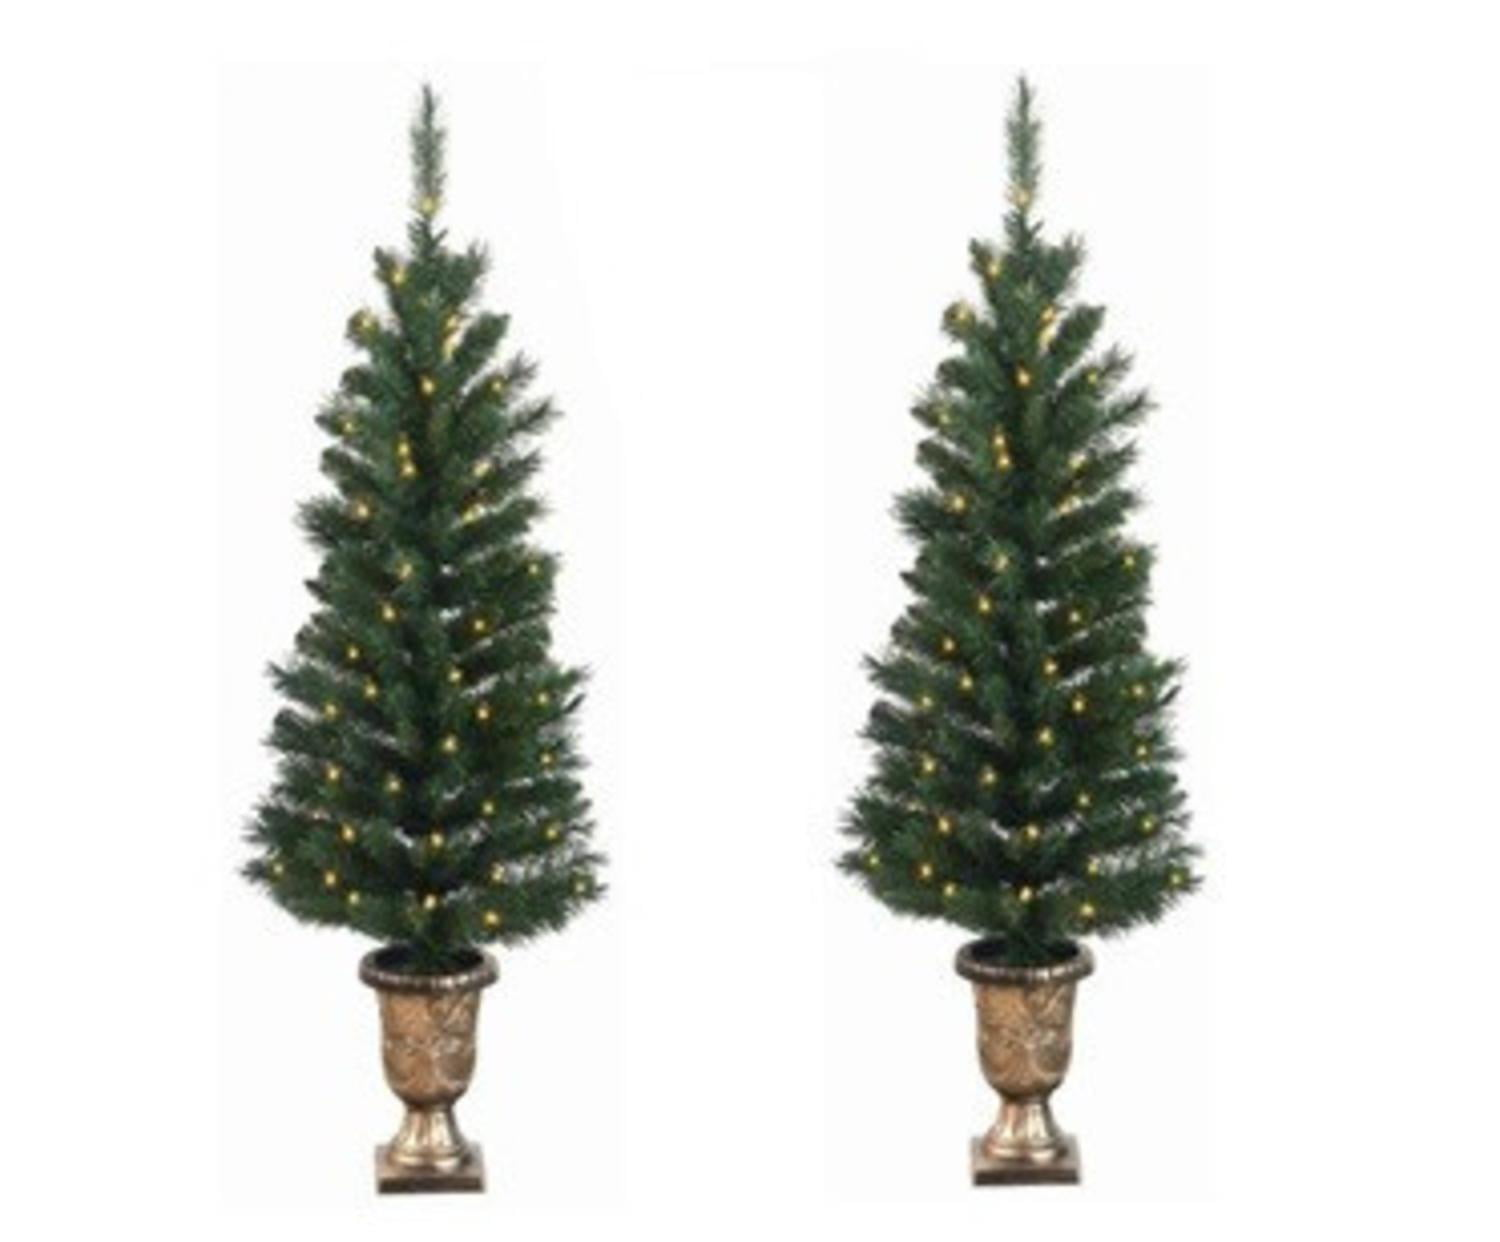 Pack of 2 pre lit potted porch pine artifical christmas topiary tree pack of 2 pre lit potted porch pine artifical christmas topiary tree clear lights walmart aloadofball Choice Image